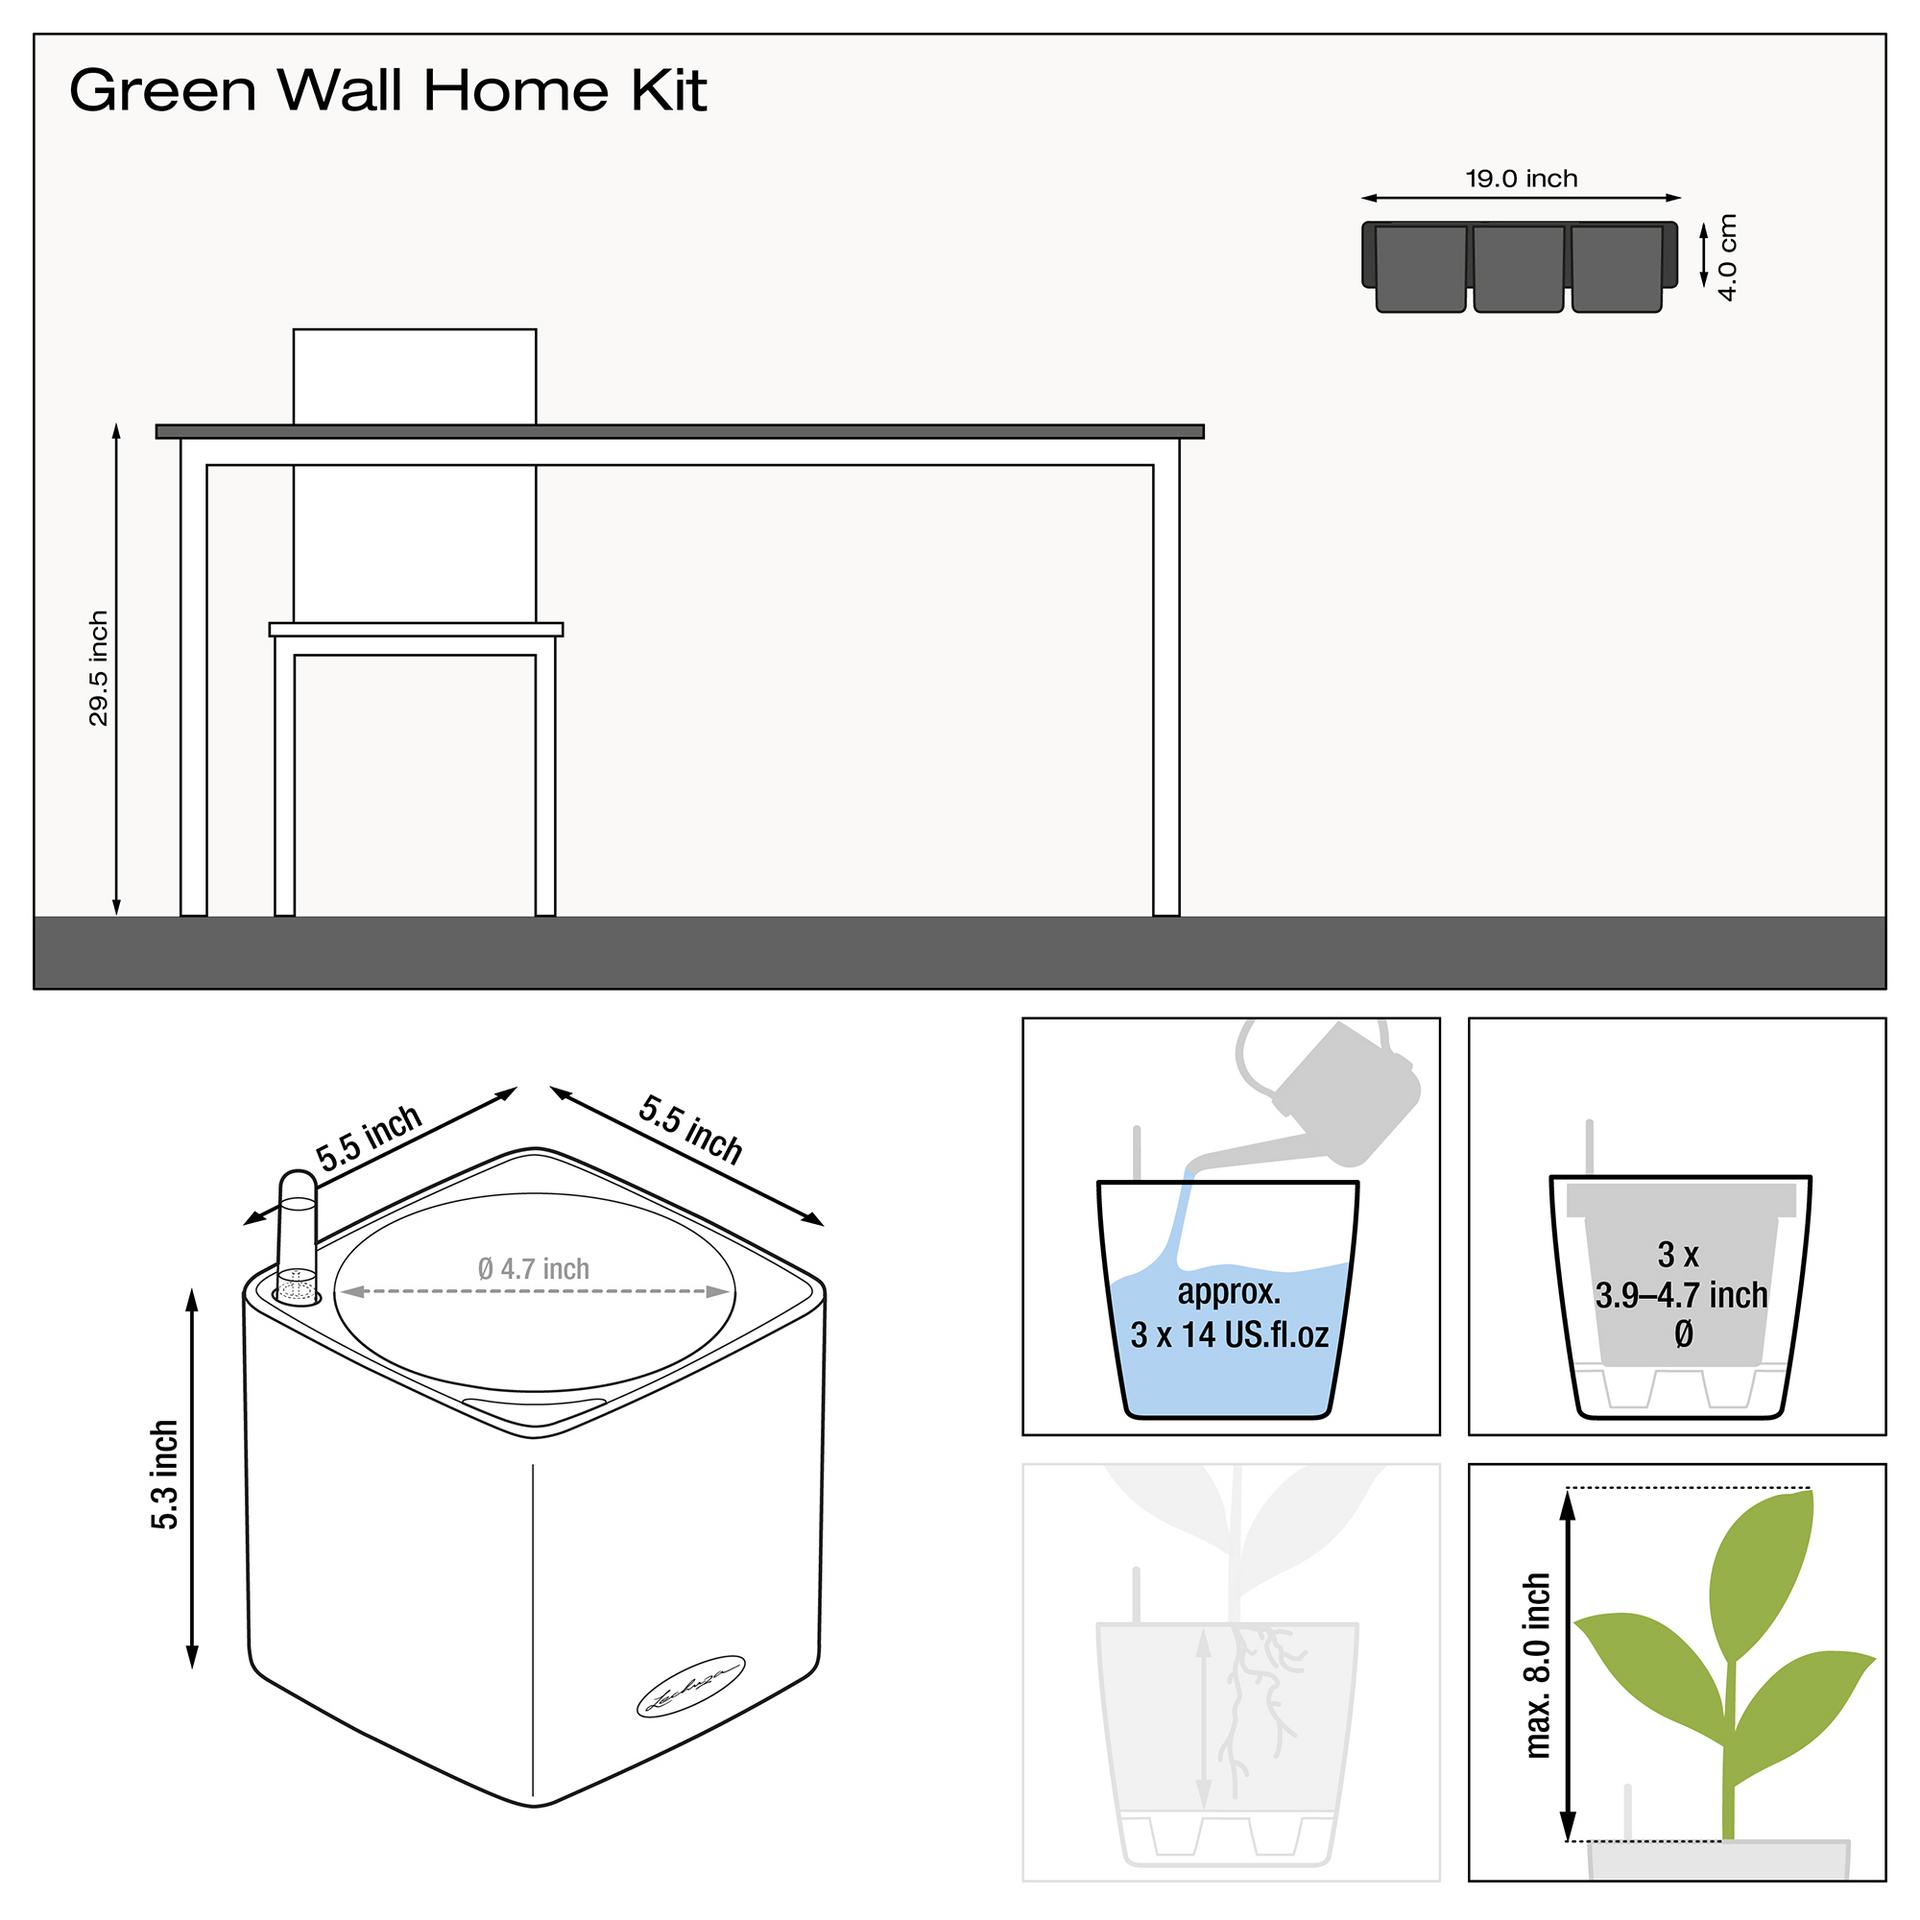 le_green-wall-color_product_addi_nz_us